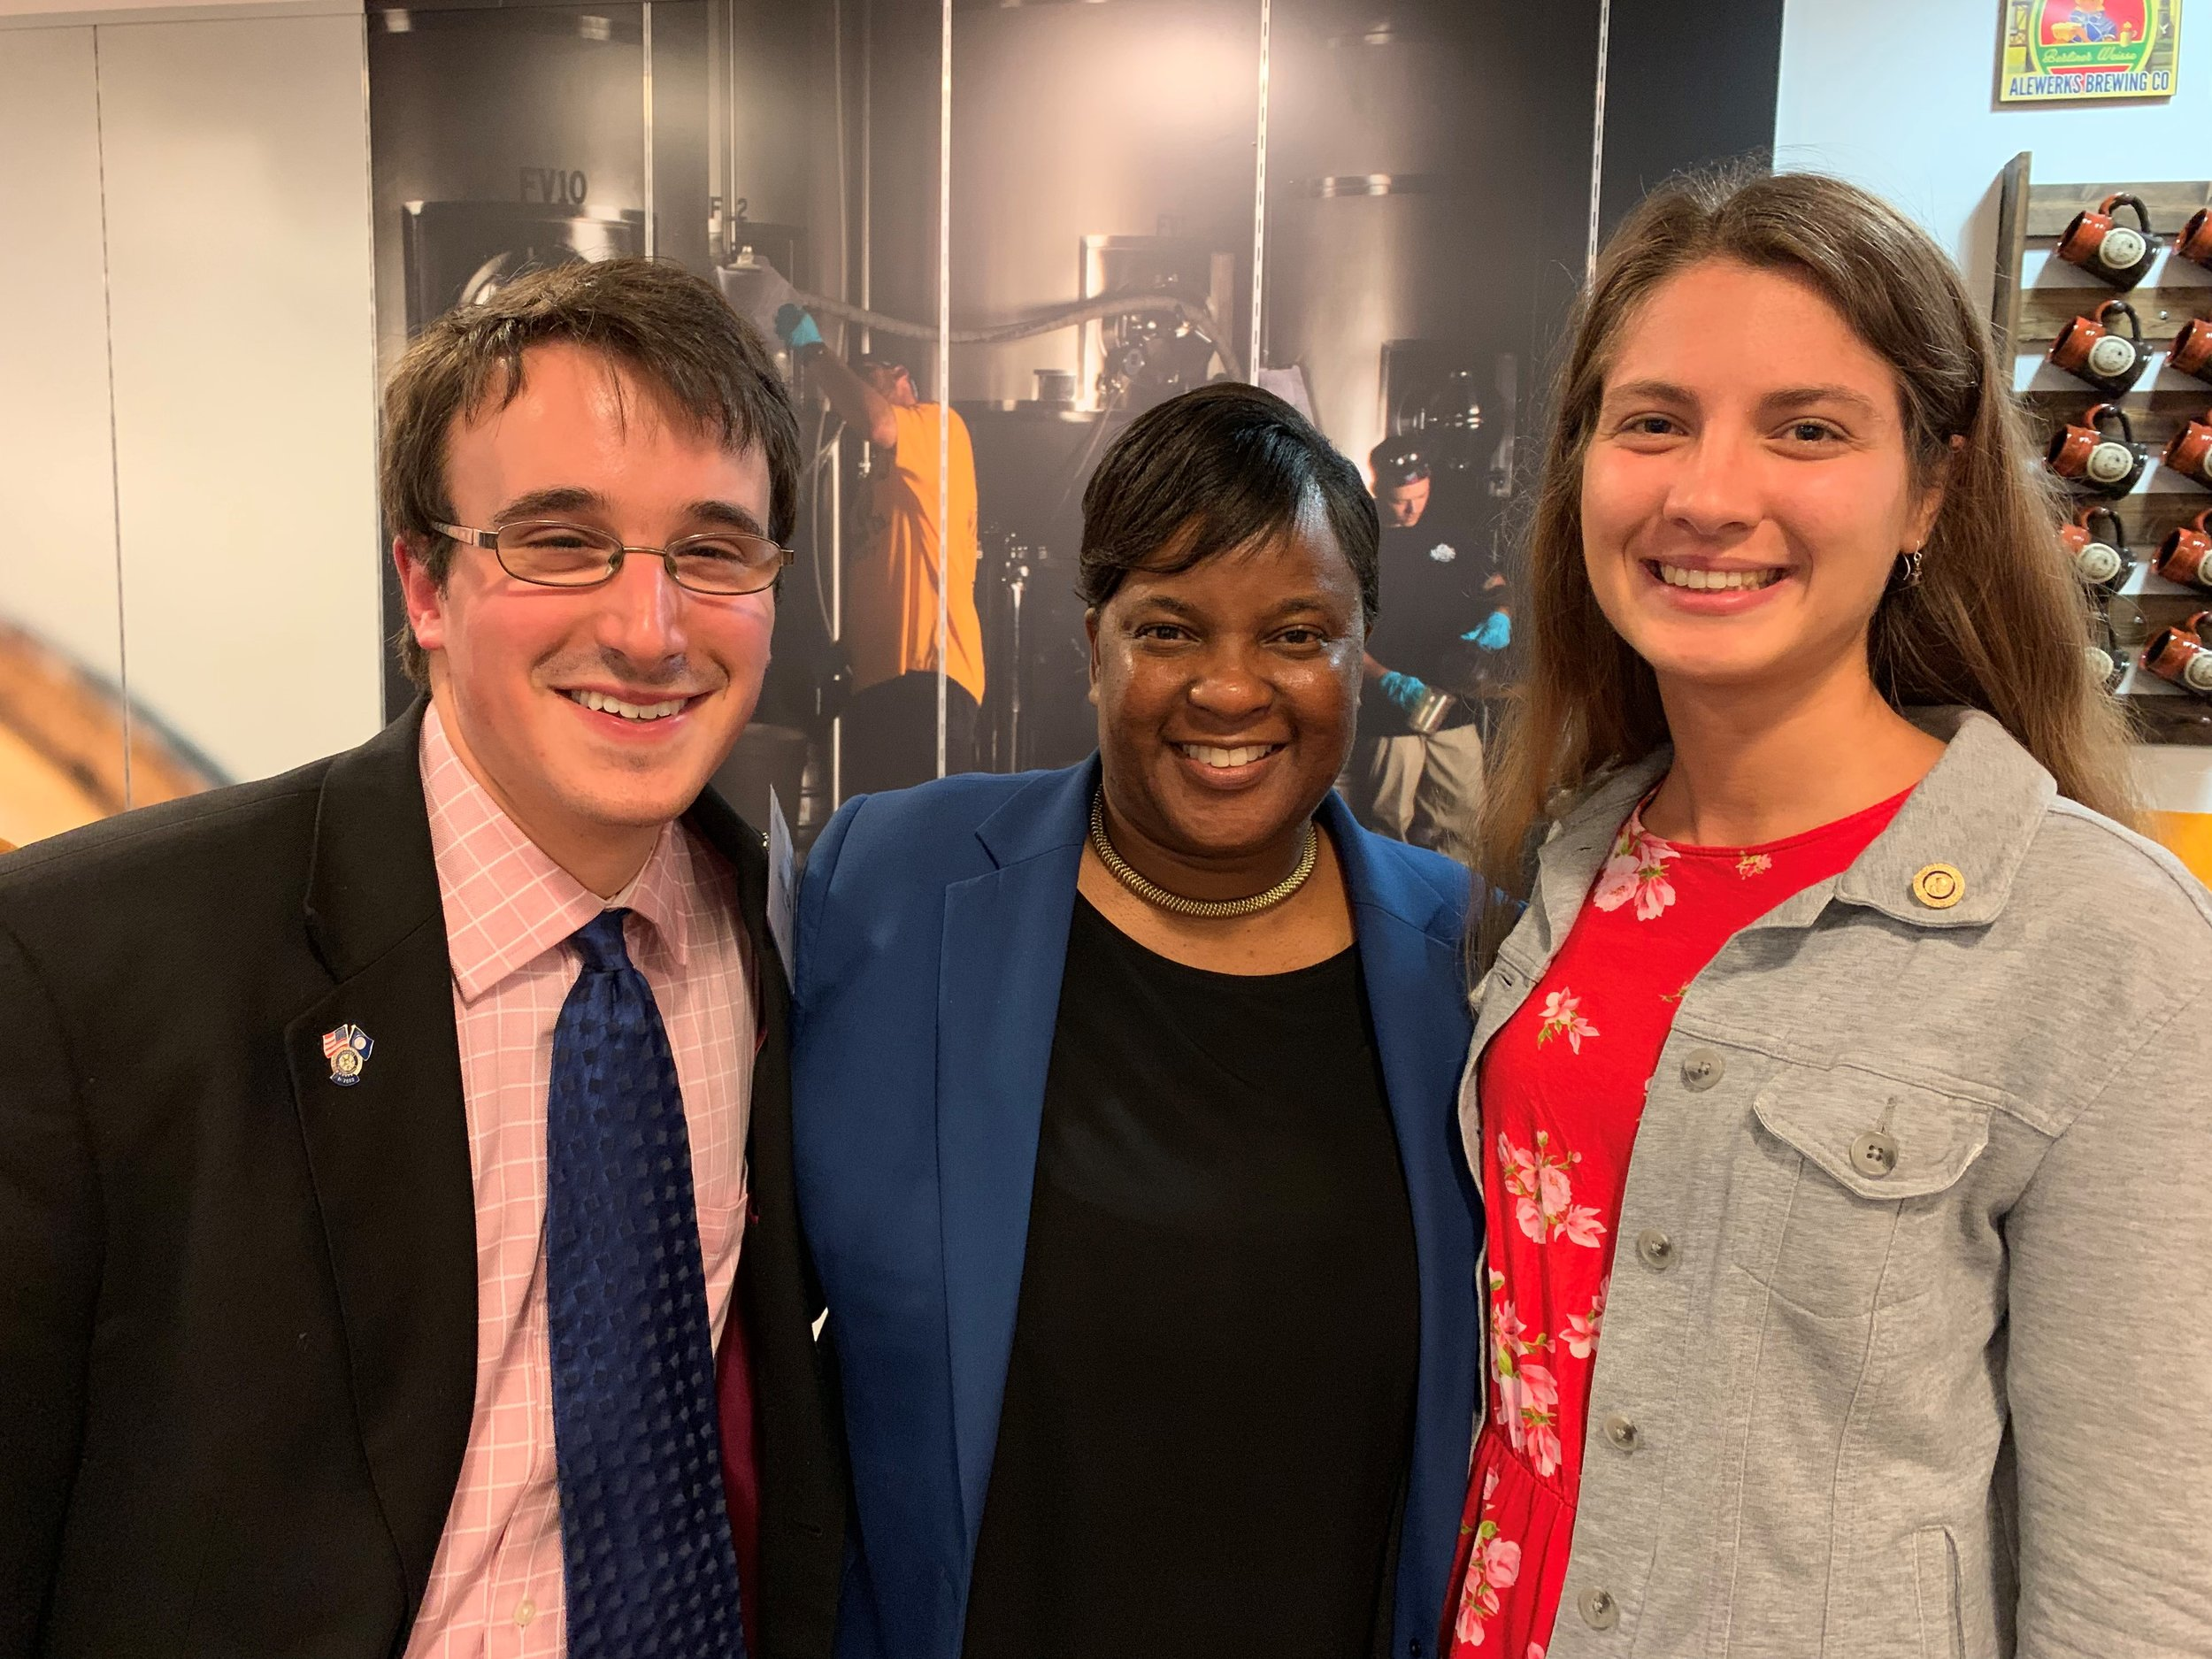 New paul harris fellow - Seyda Celci, right, President of Williamsburg Rotaract Club, awarded PHF by the Satellite Club. DG Clenise Plattt, center, and member Grayson Moore, left, join in the celebration.